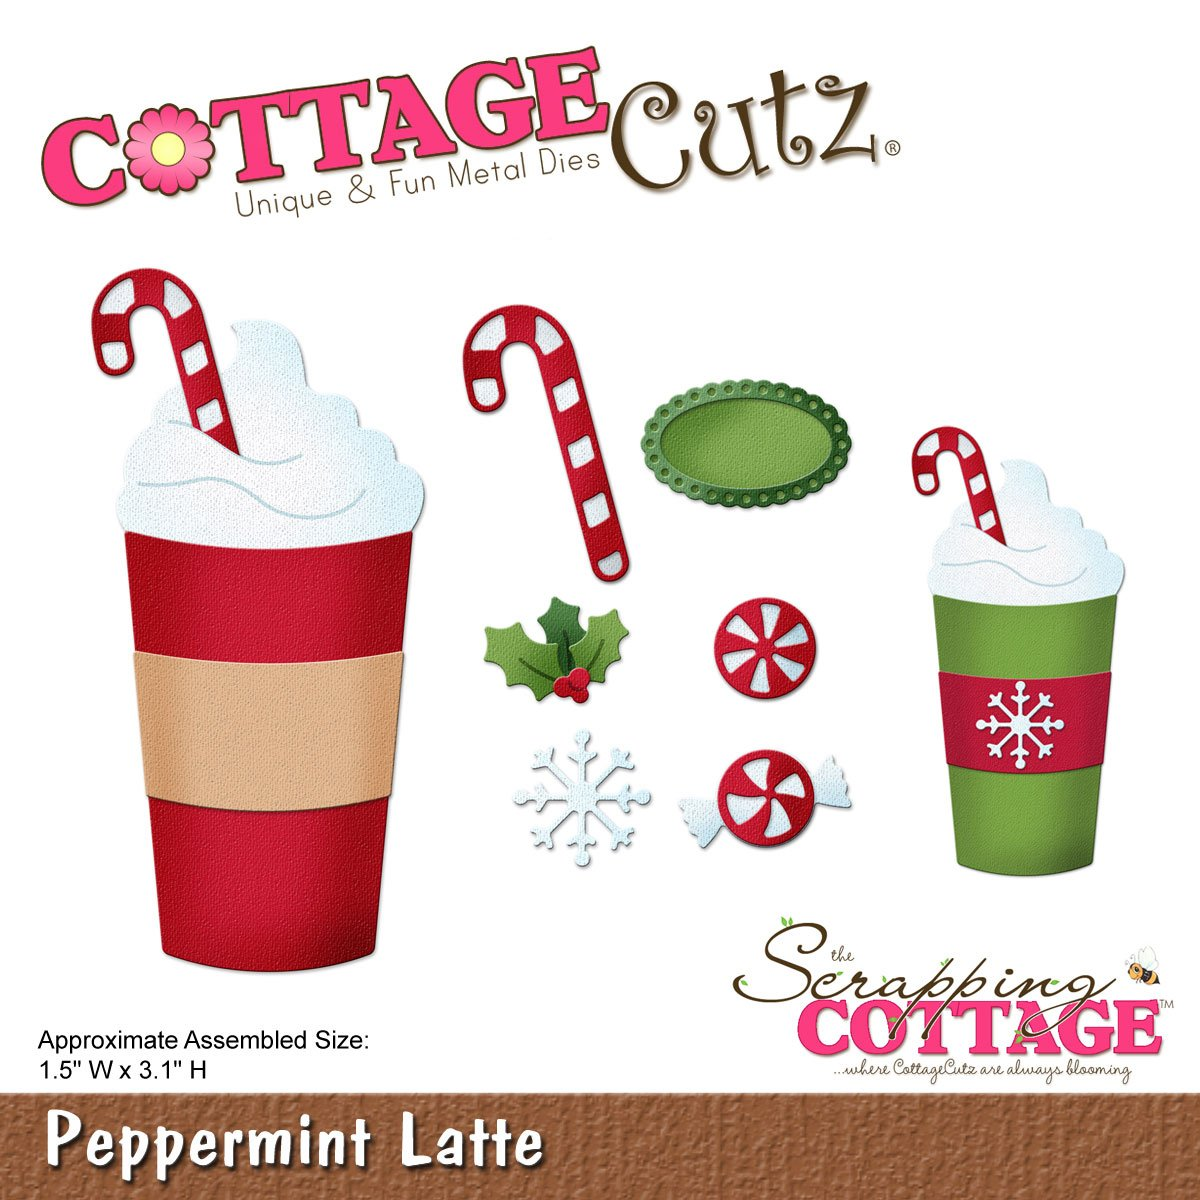 Cottagecutz Die-Peppermint Latte, 1.5x3.1 CC-179